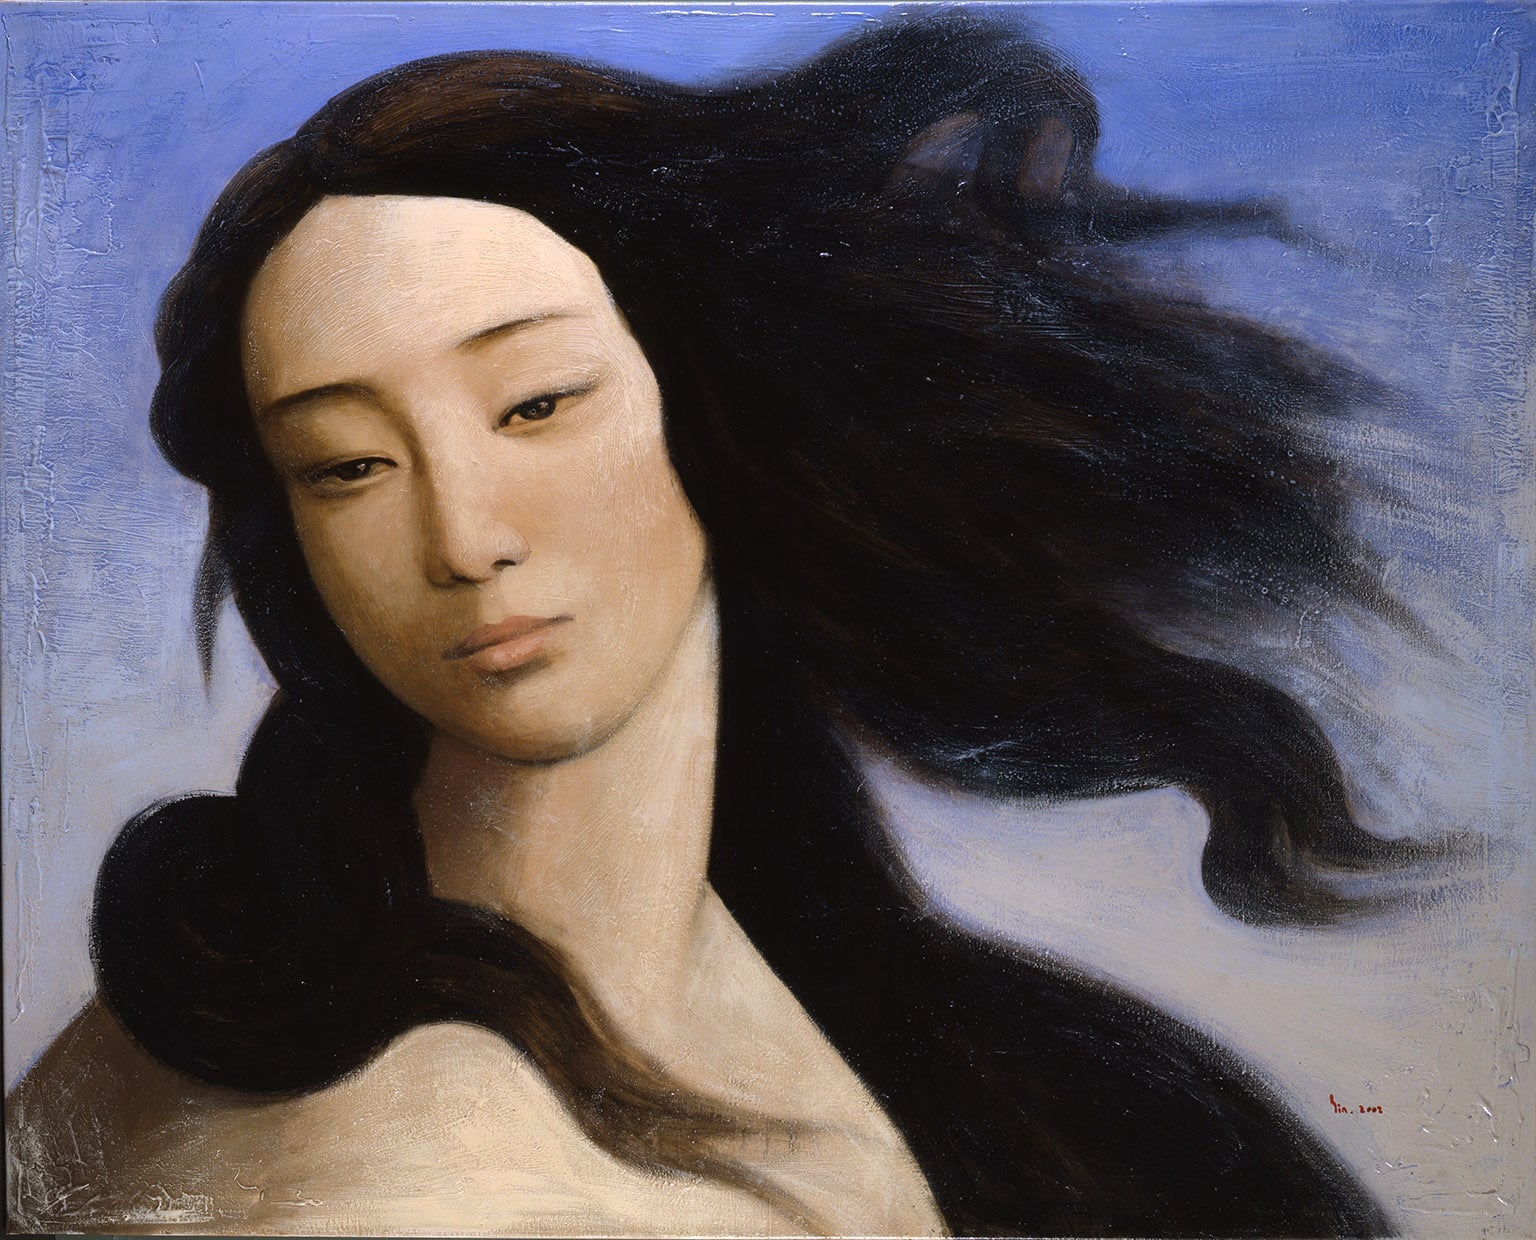 1. Botticelli Reimagined, V and A, 50% off with a National Art Pass - Yin Xin, Venus, after Botticelli, 2008 Private collection courtesy Duhamel Fine Art Paris